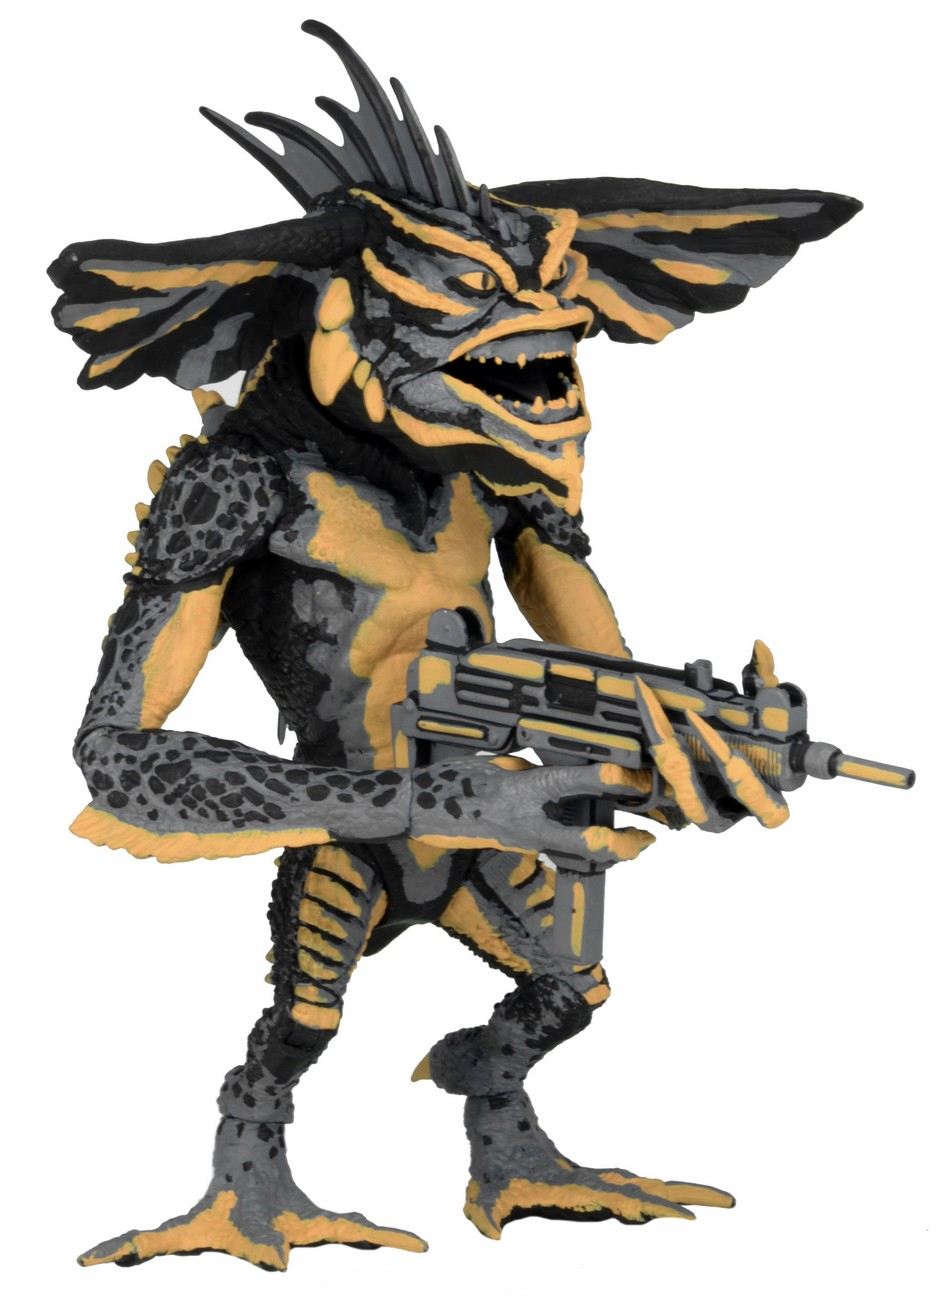 NECA Shipping This Week: Video Game Mohawk Gremlin, Friday The 13th Part 6 Clothed Figure, Iron Maiden Powerslave Bust